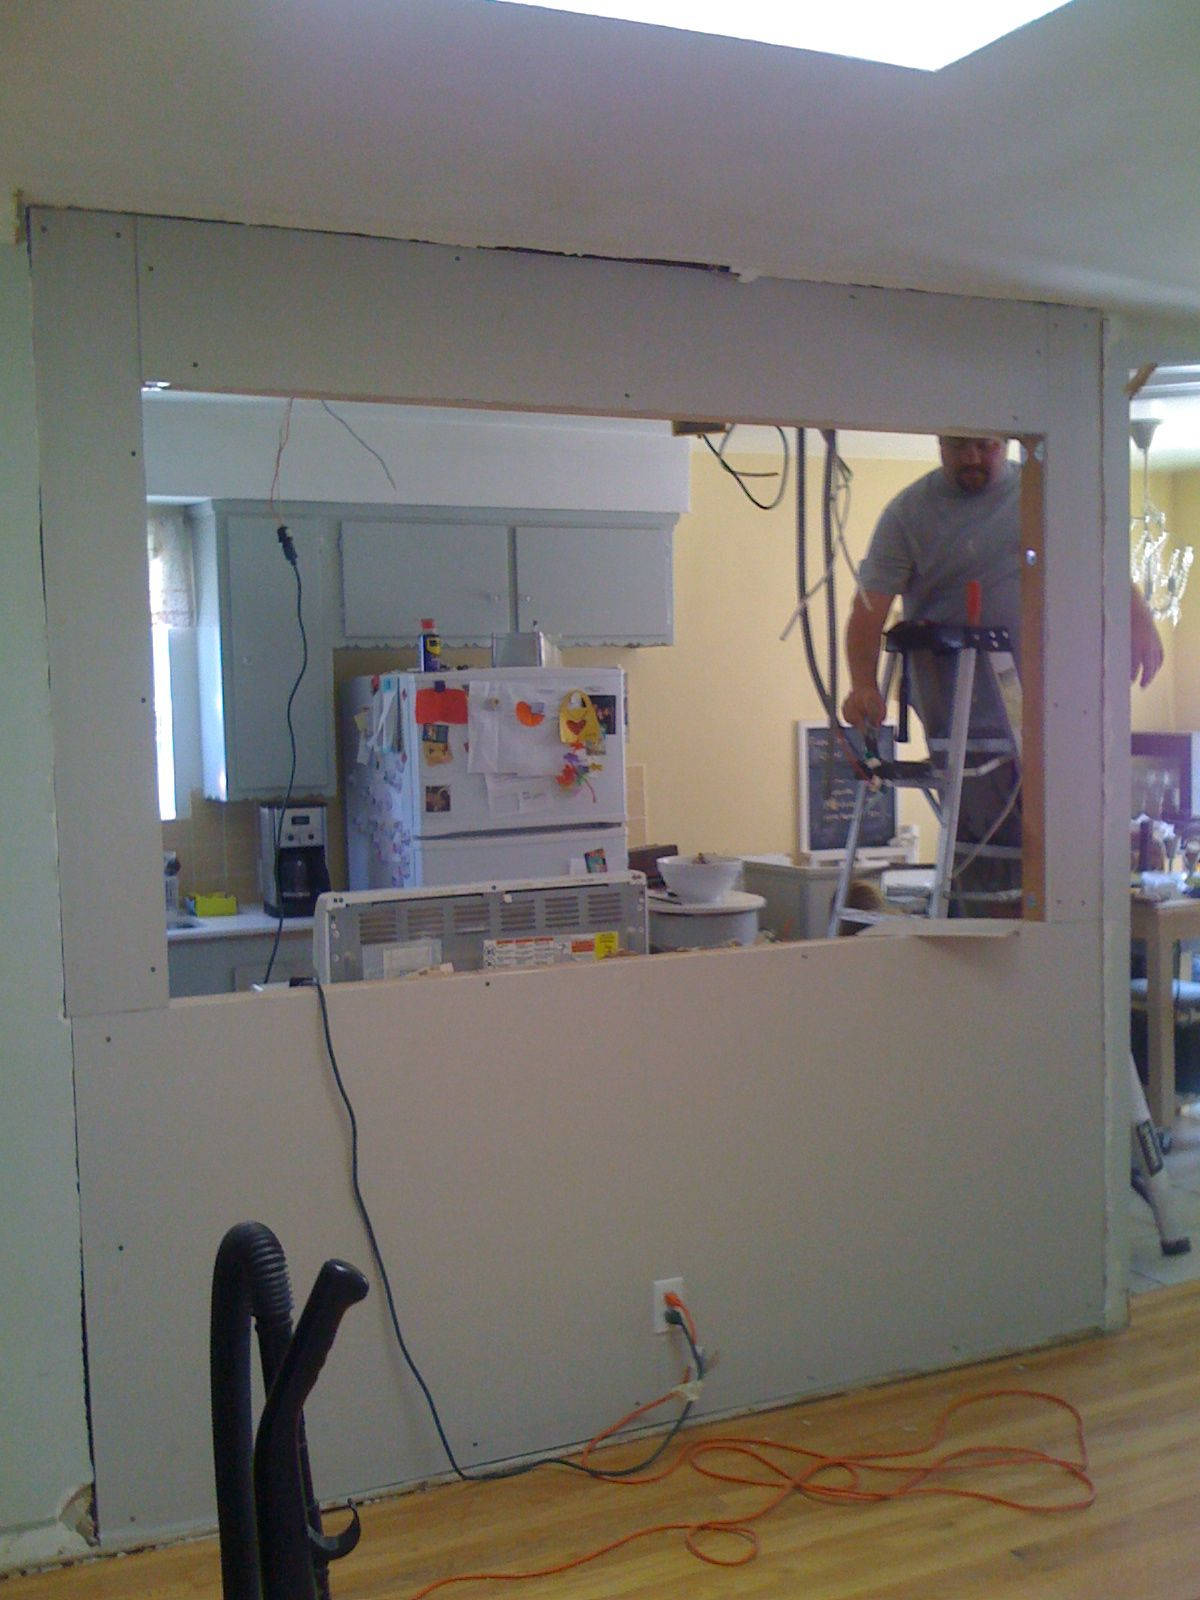 My Fifties Kitchen Redo KNOCKING OUT A WALL TO INSTALL A BAR The